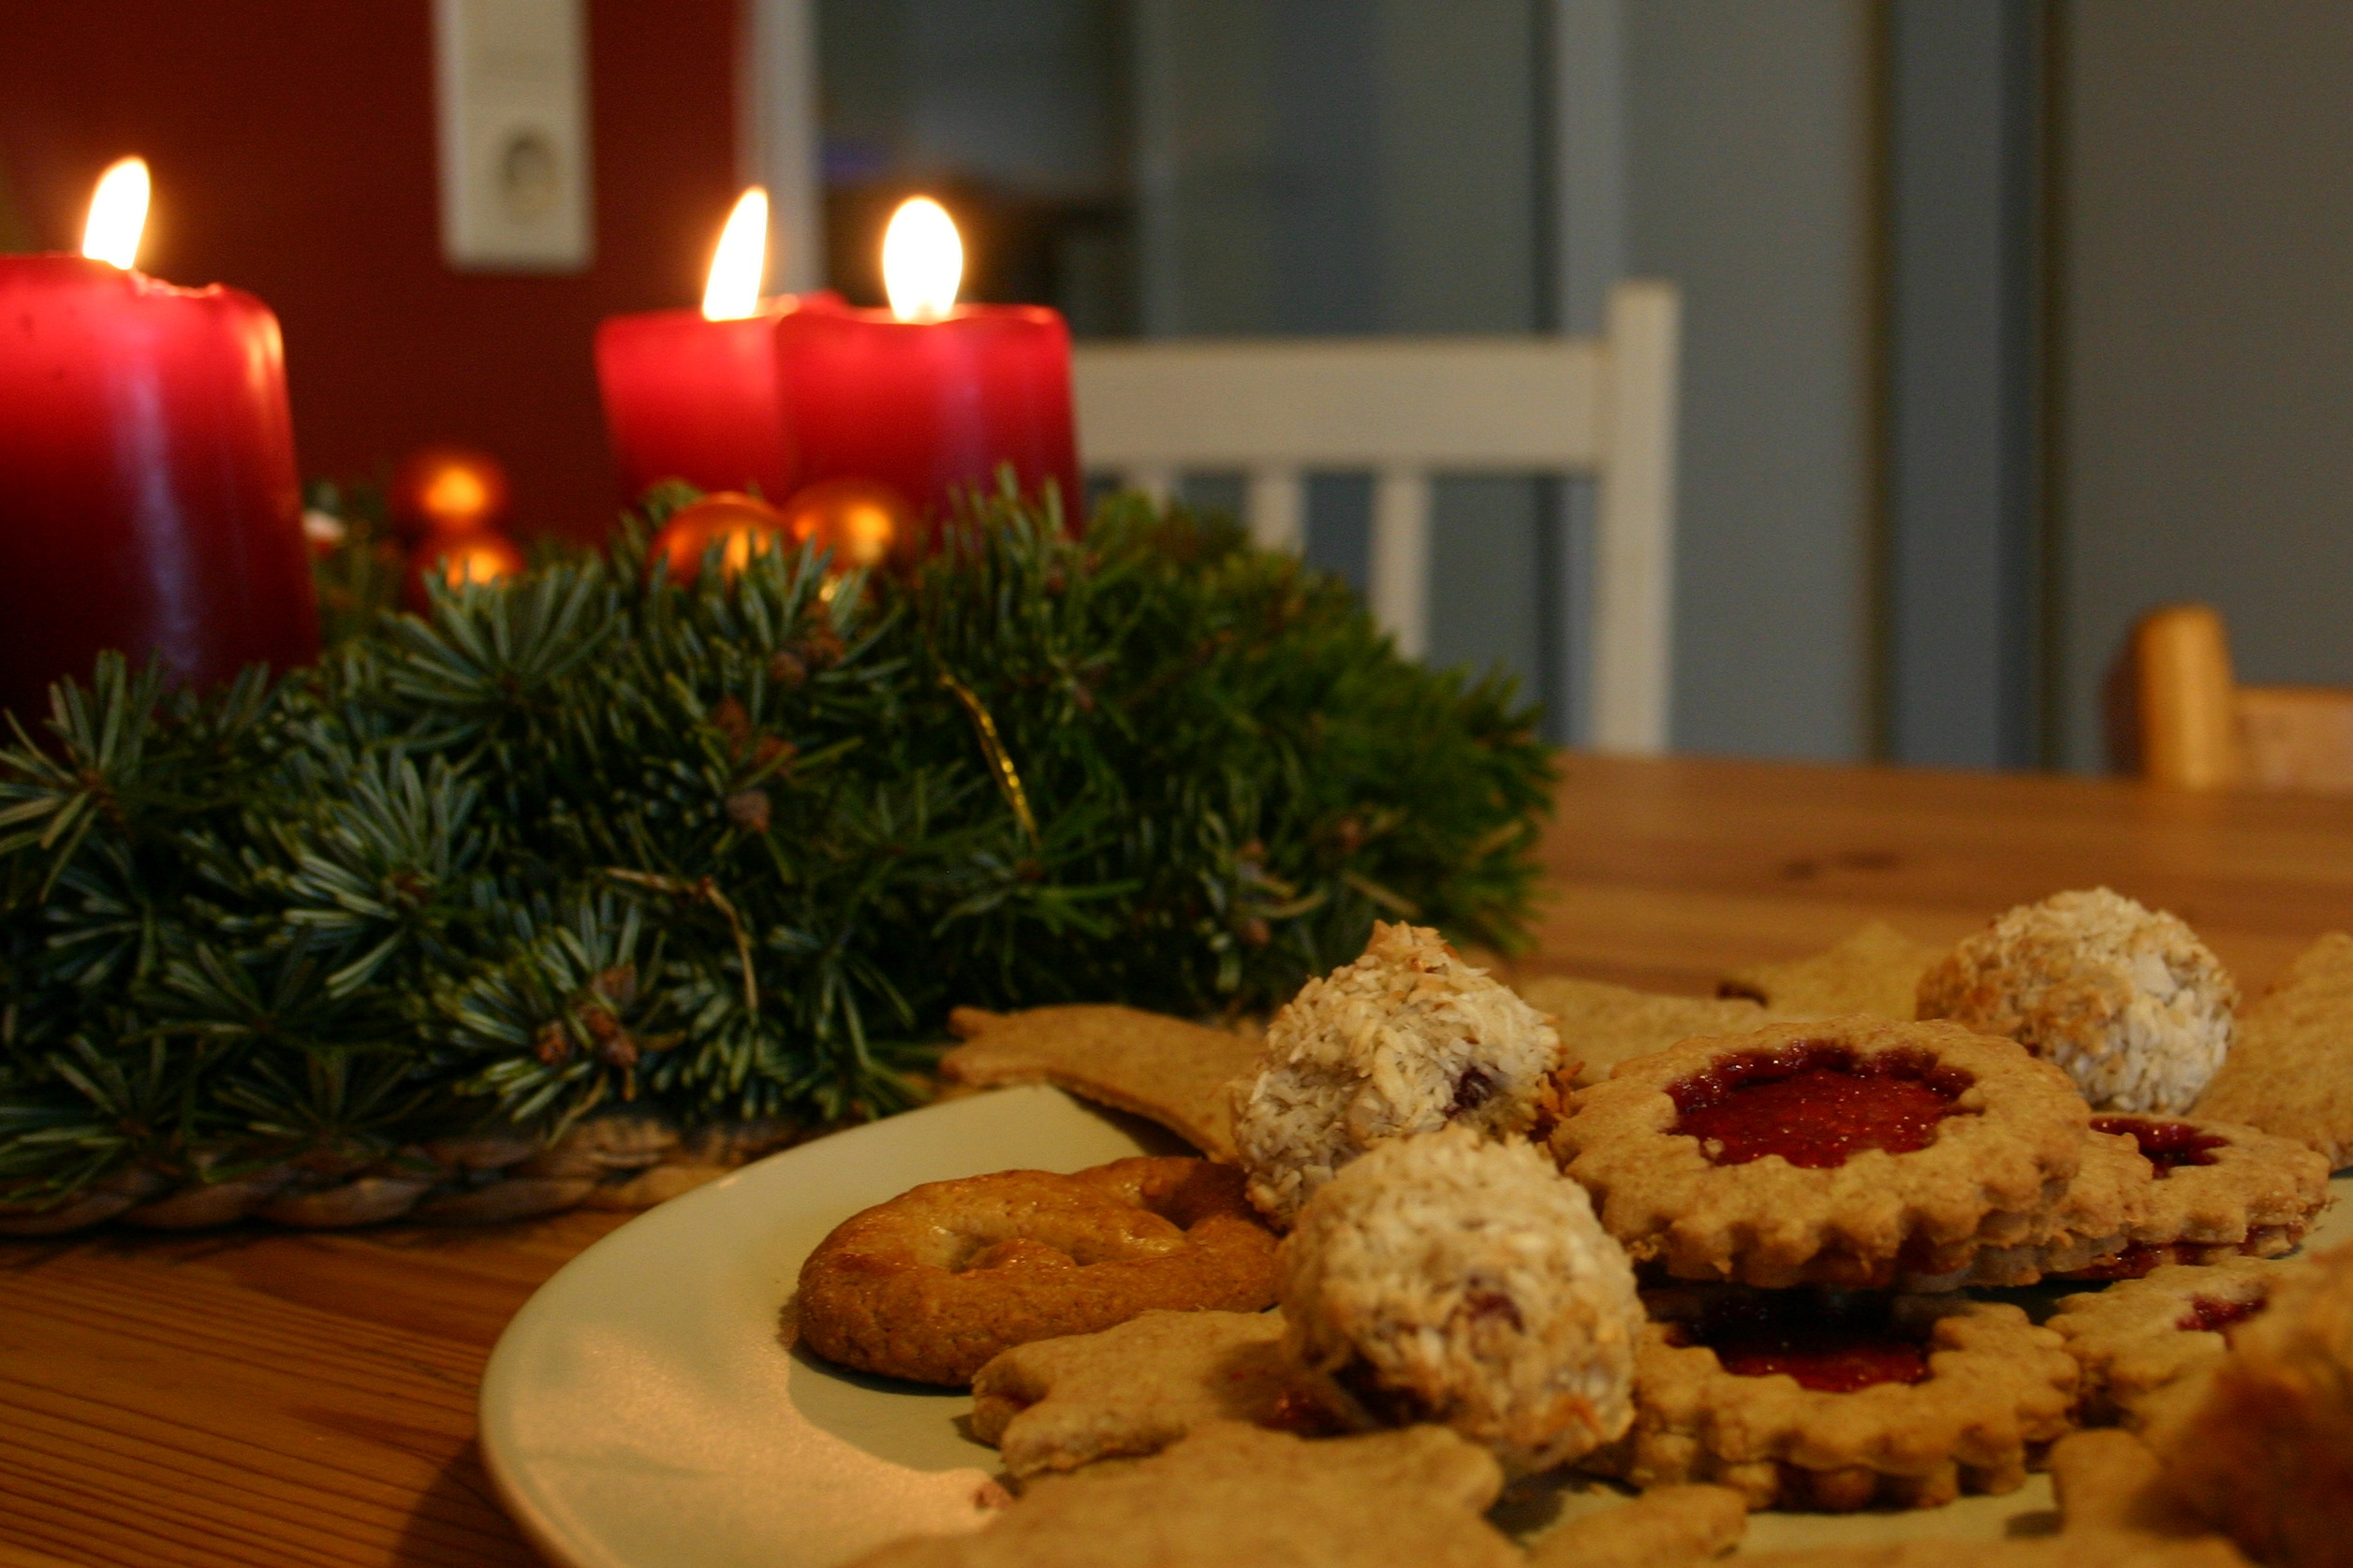 Christmas_cookies_&_decoration.jpg (2513×1675)